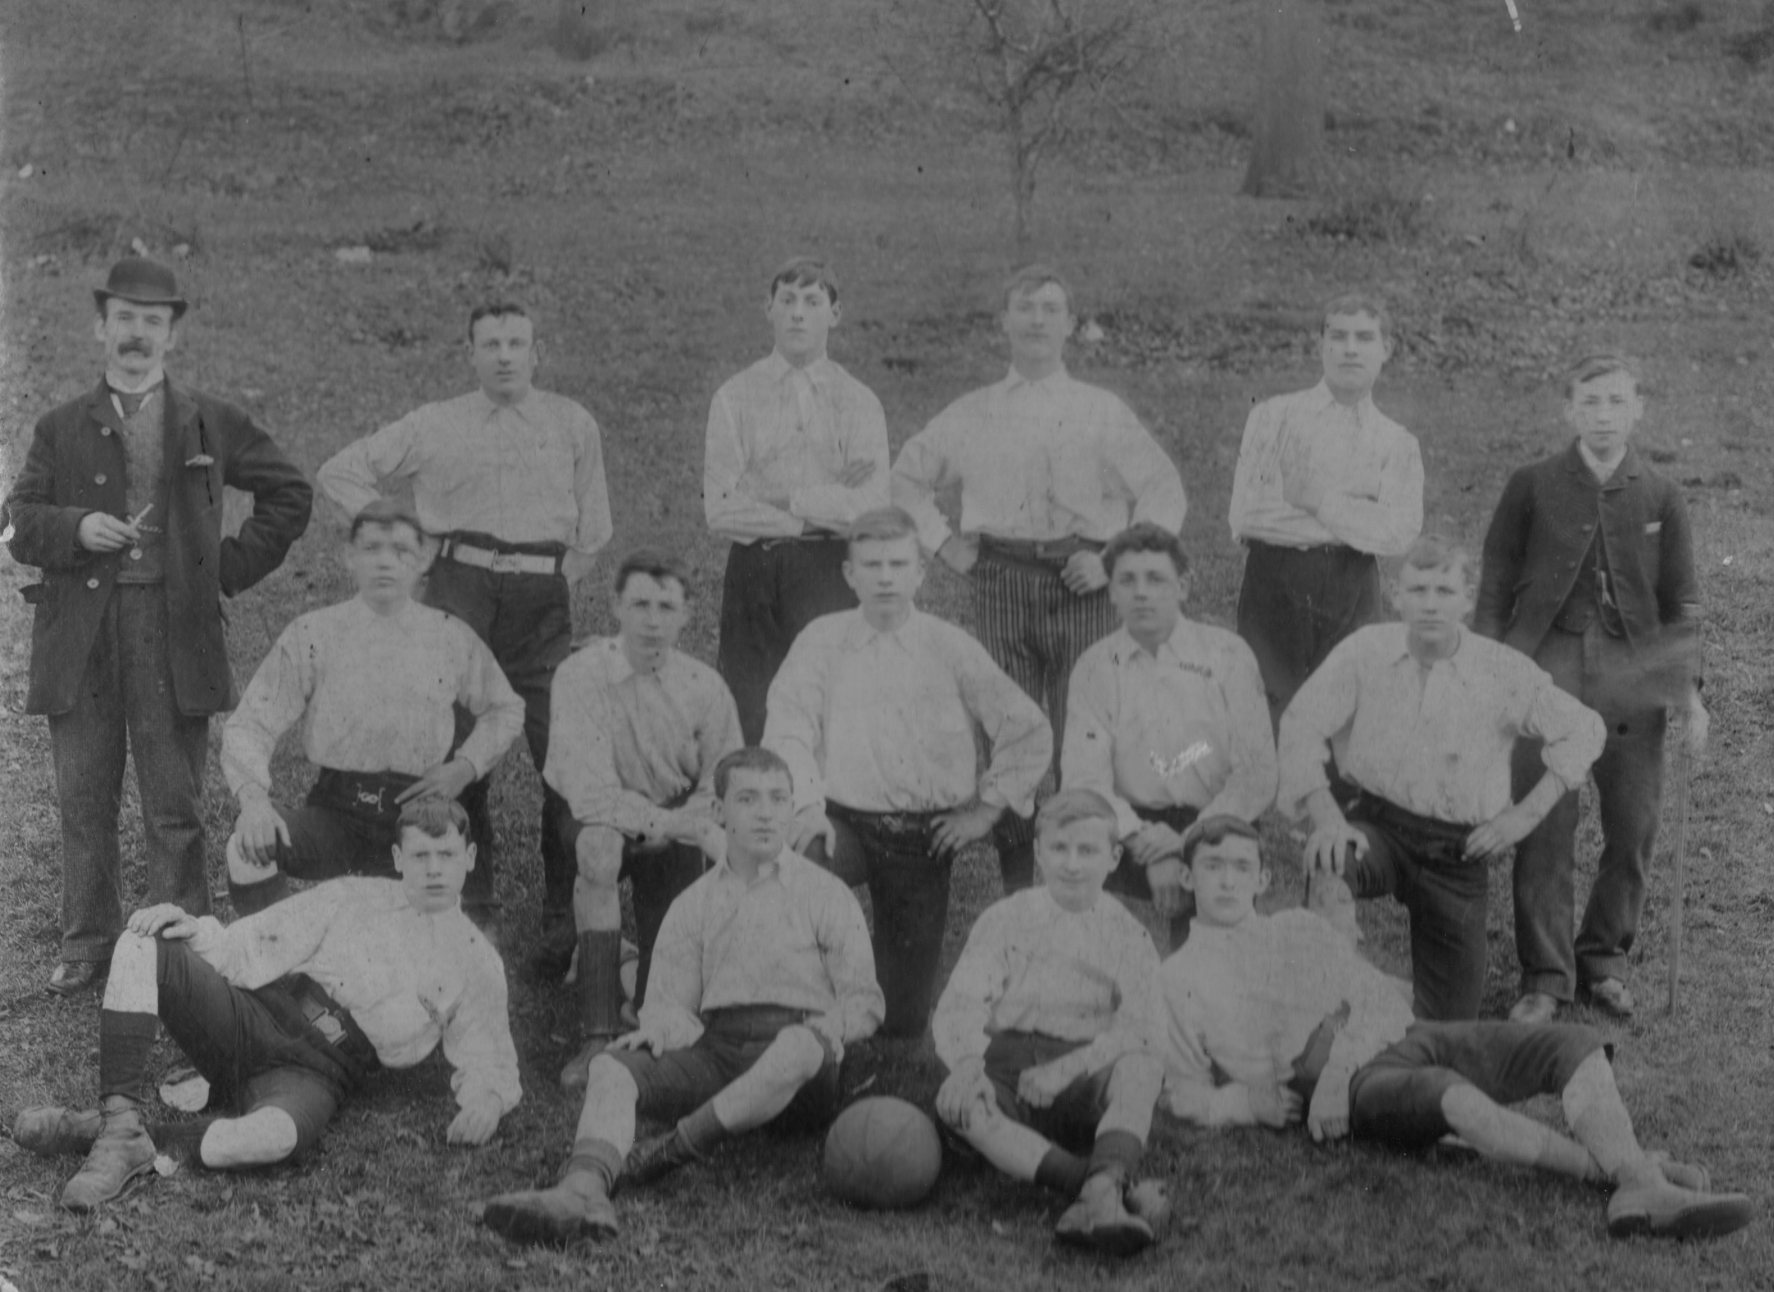 Unknown team 1894